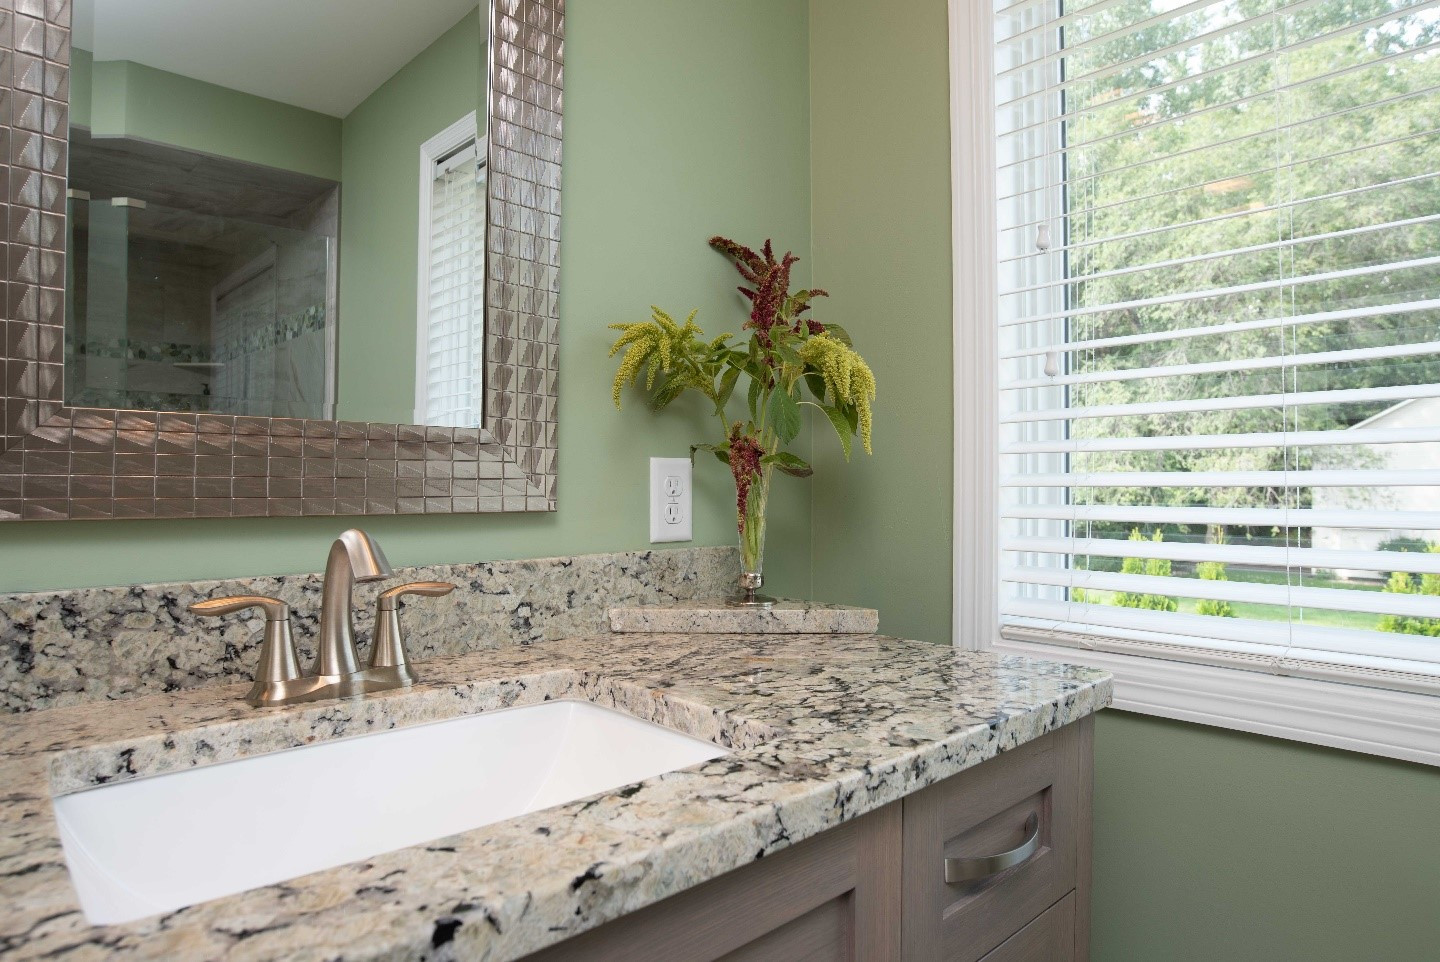 EDEN PRAIRIE CAPE COD INSPIRED MASTER BATH:  This bath sings with a blend of fresh greens and white washed wood tones